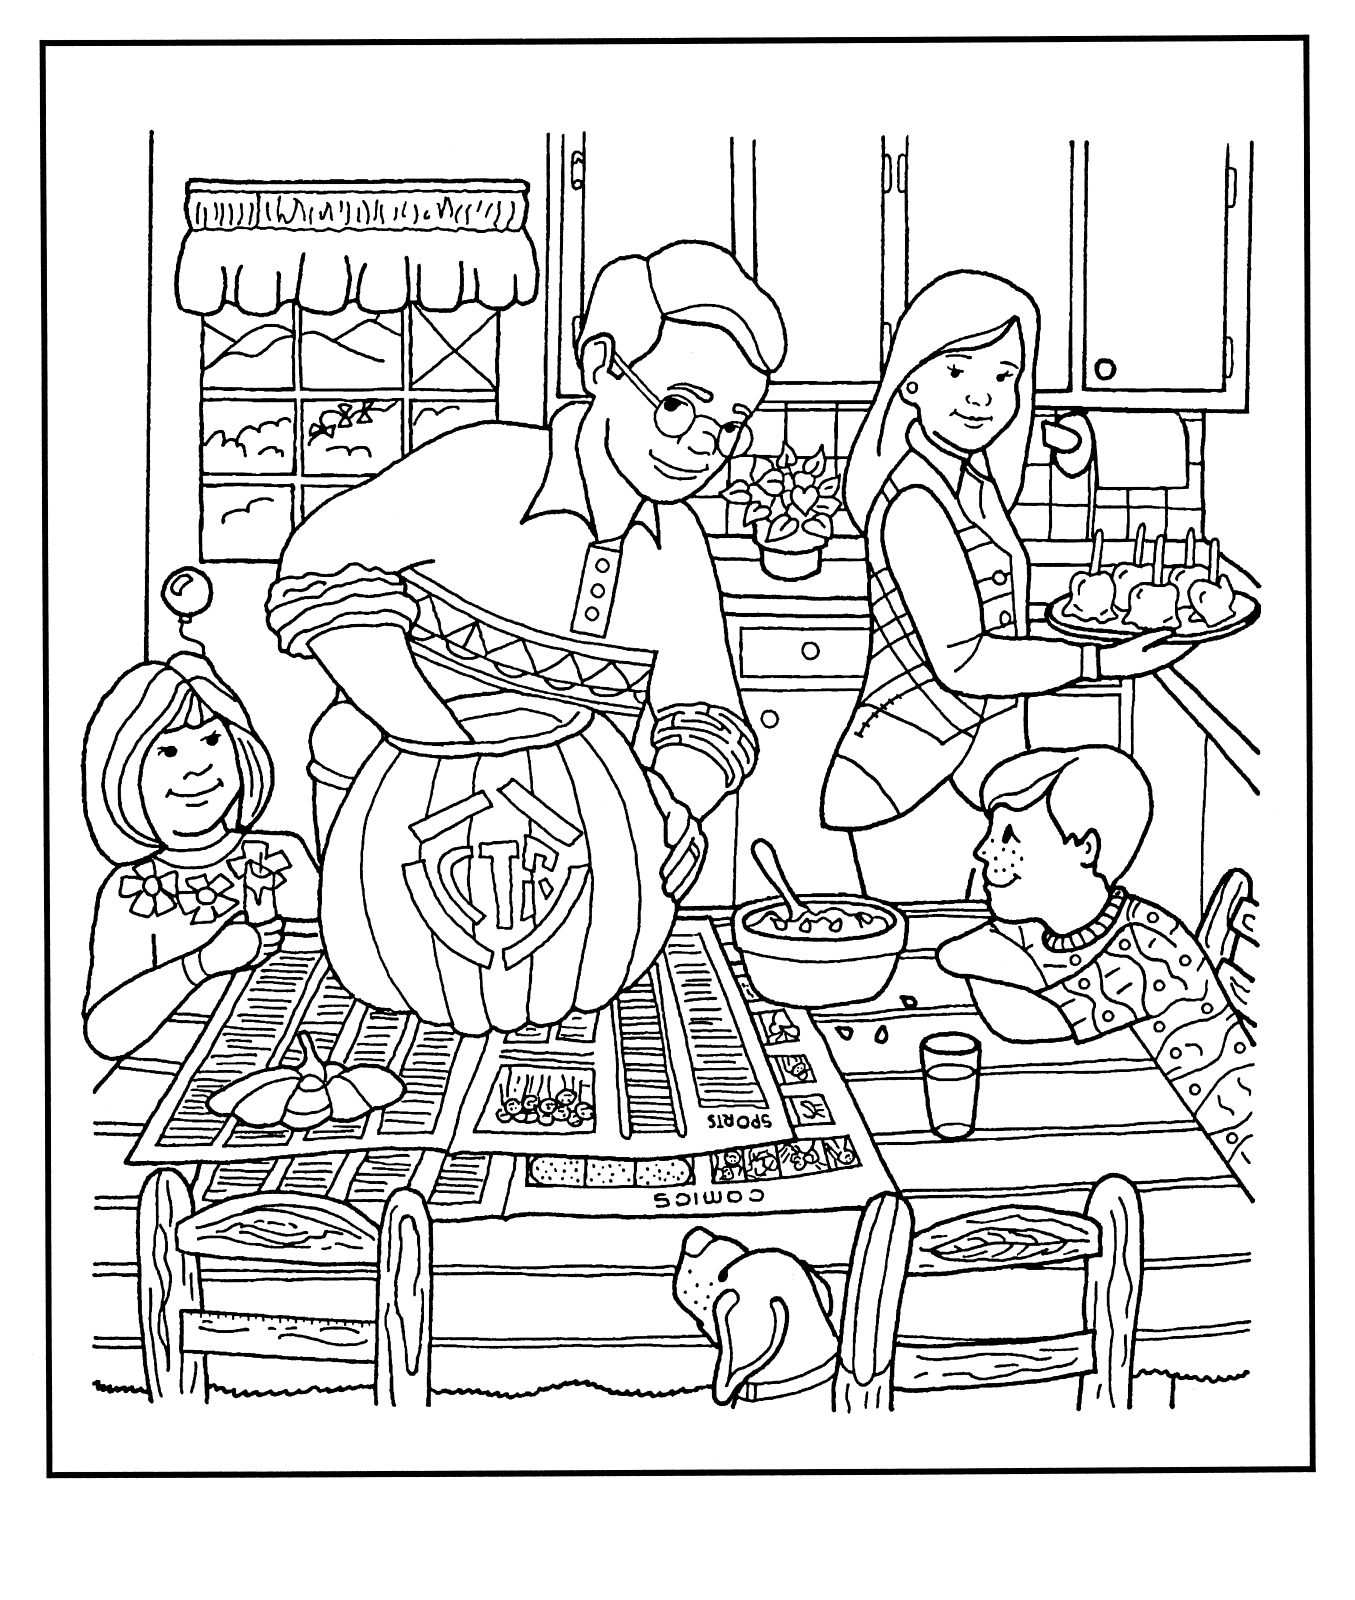 Pumpkin carving for Ctr coloring page lds